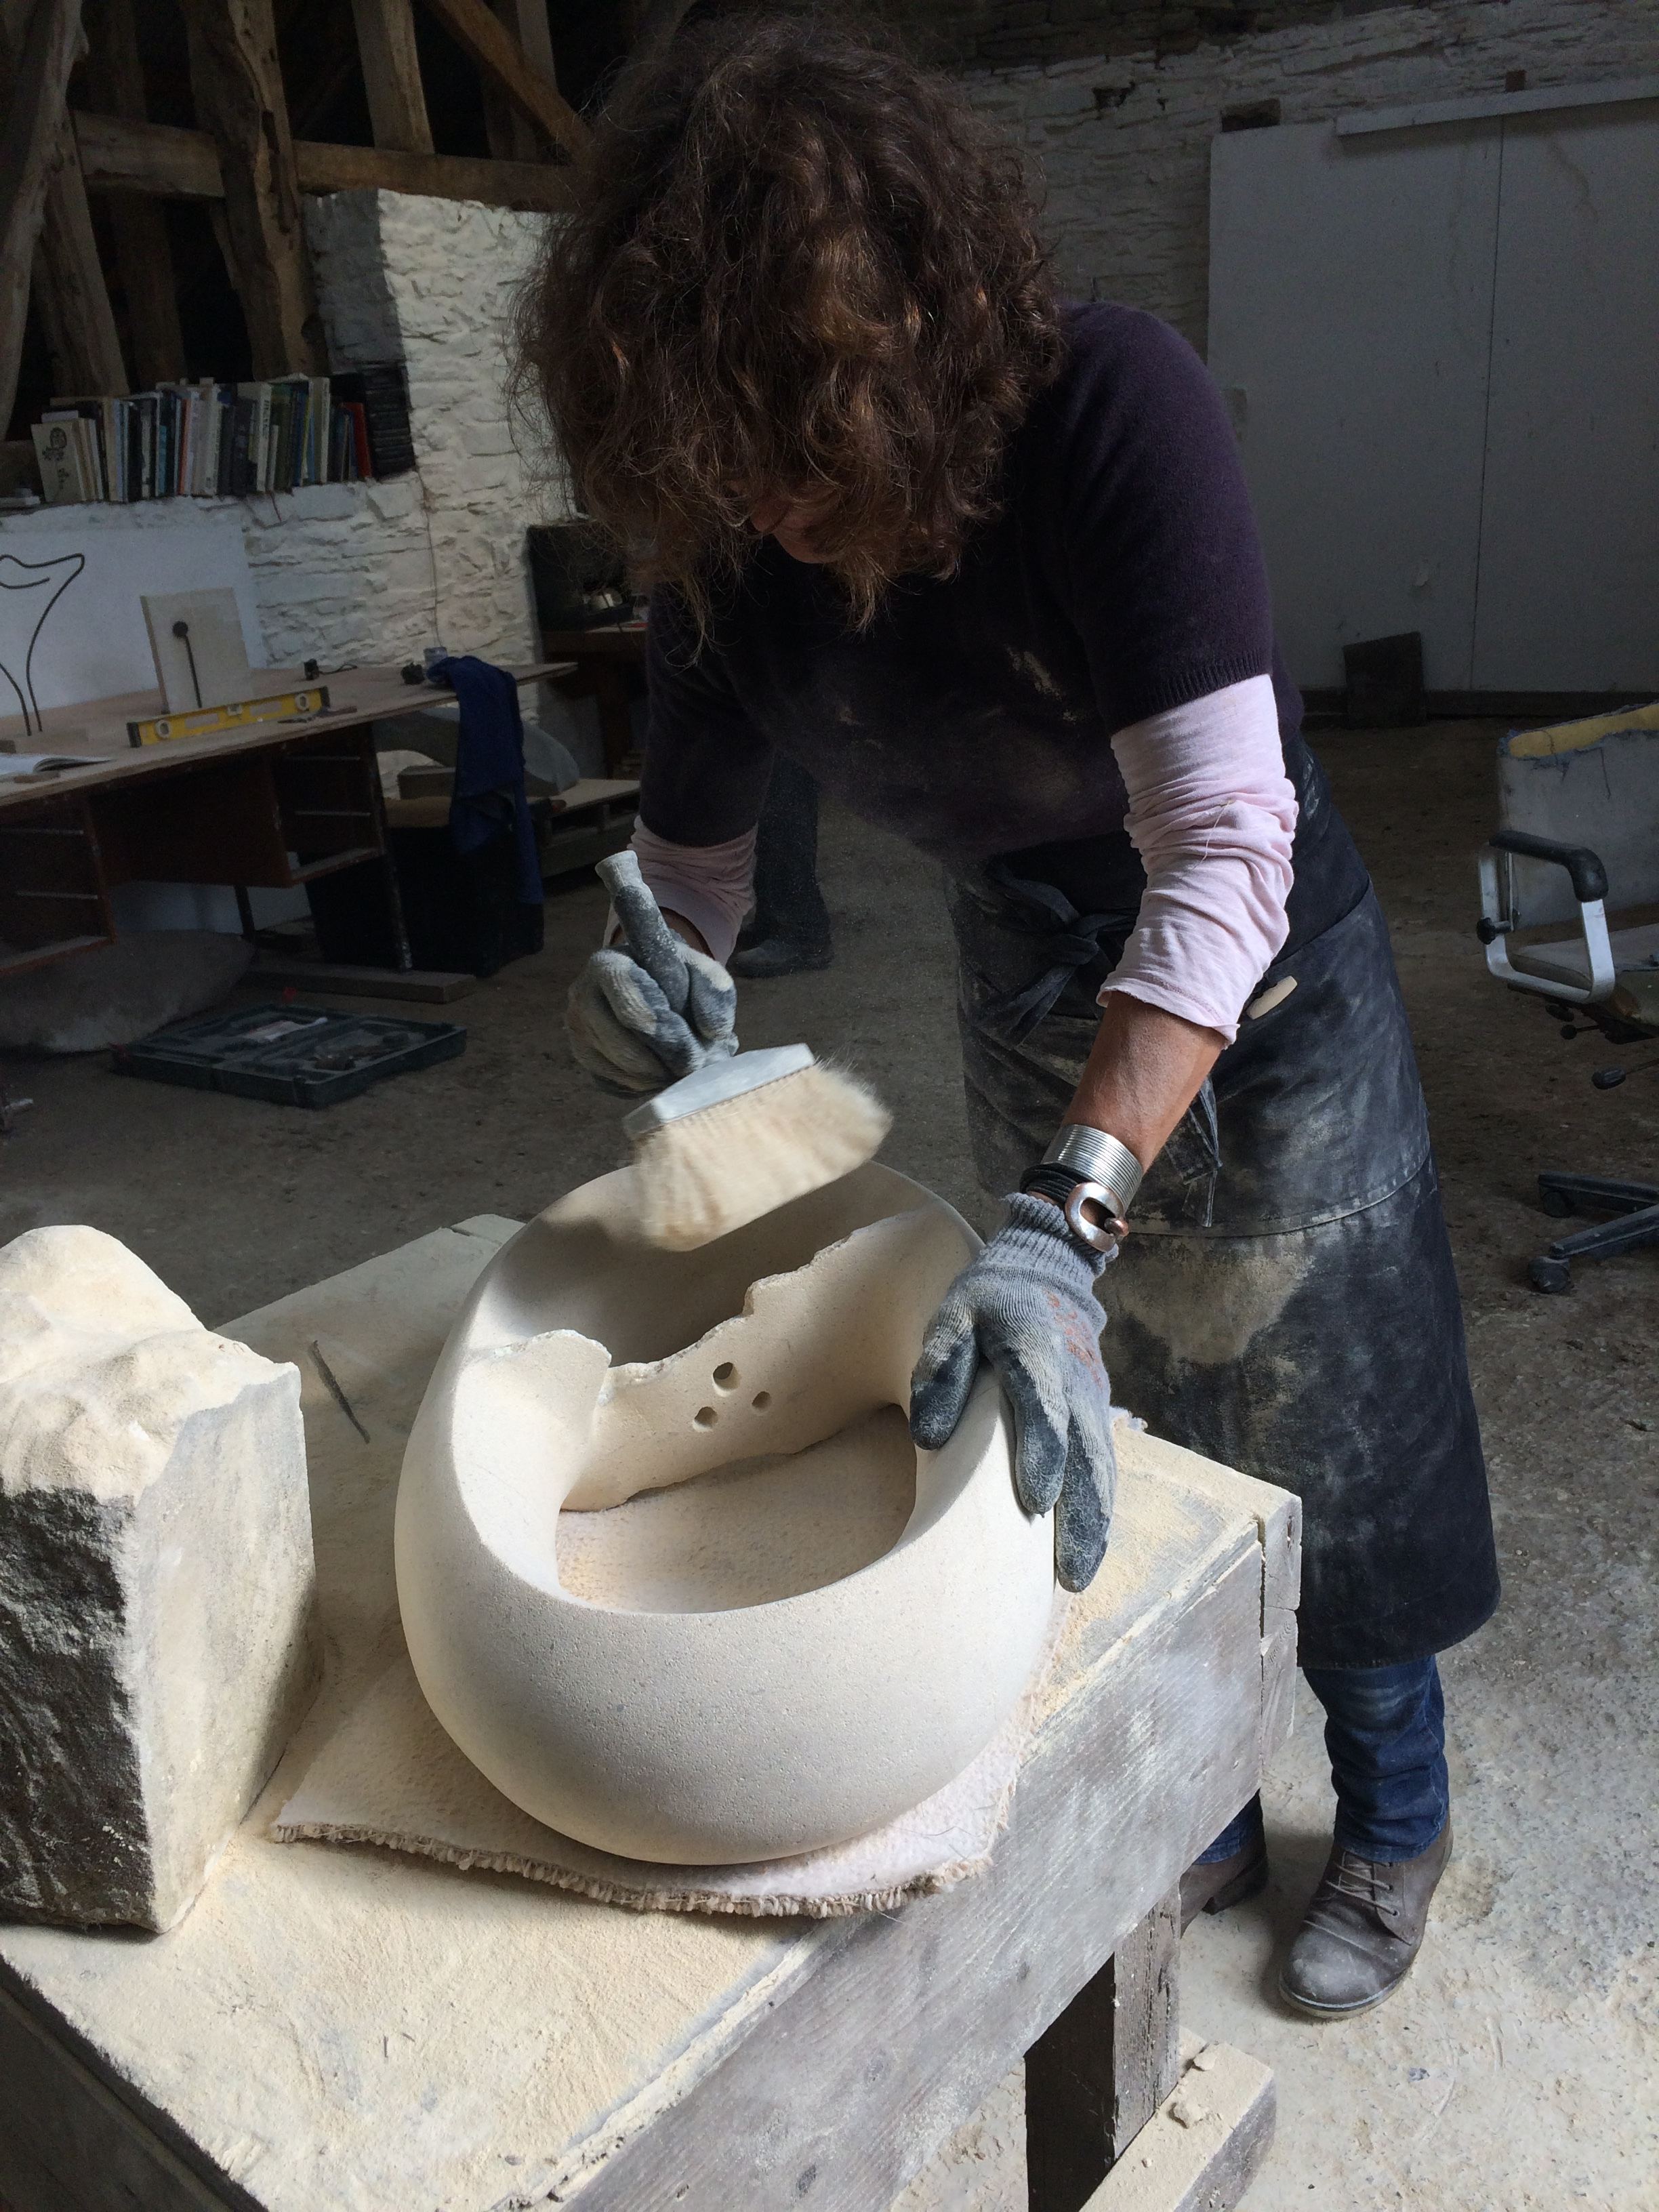 stone carving and metal sculpture